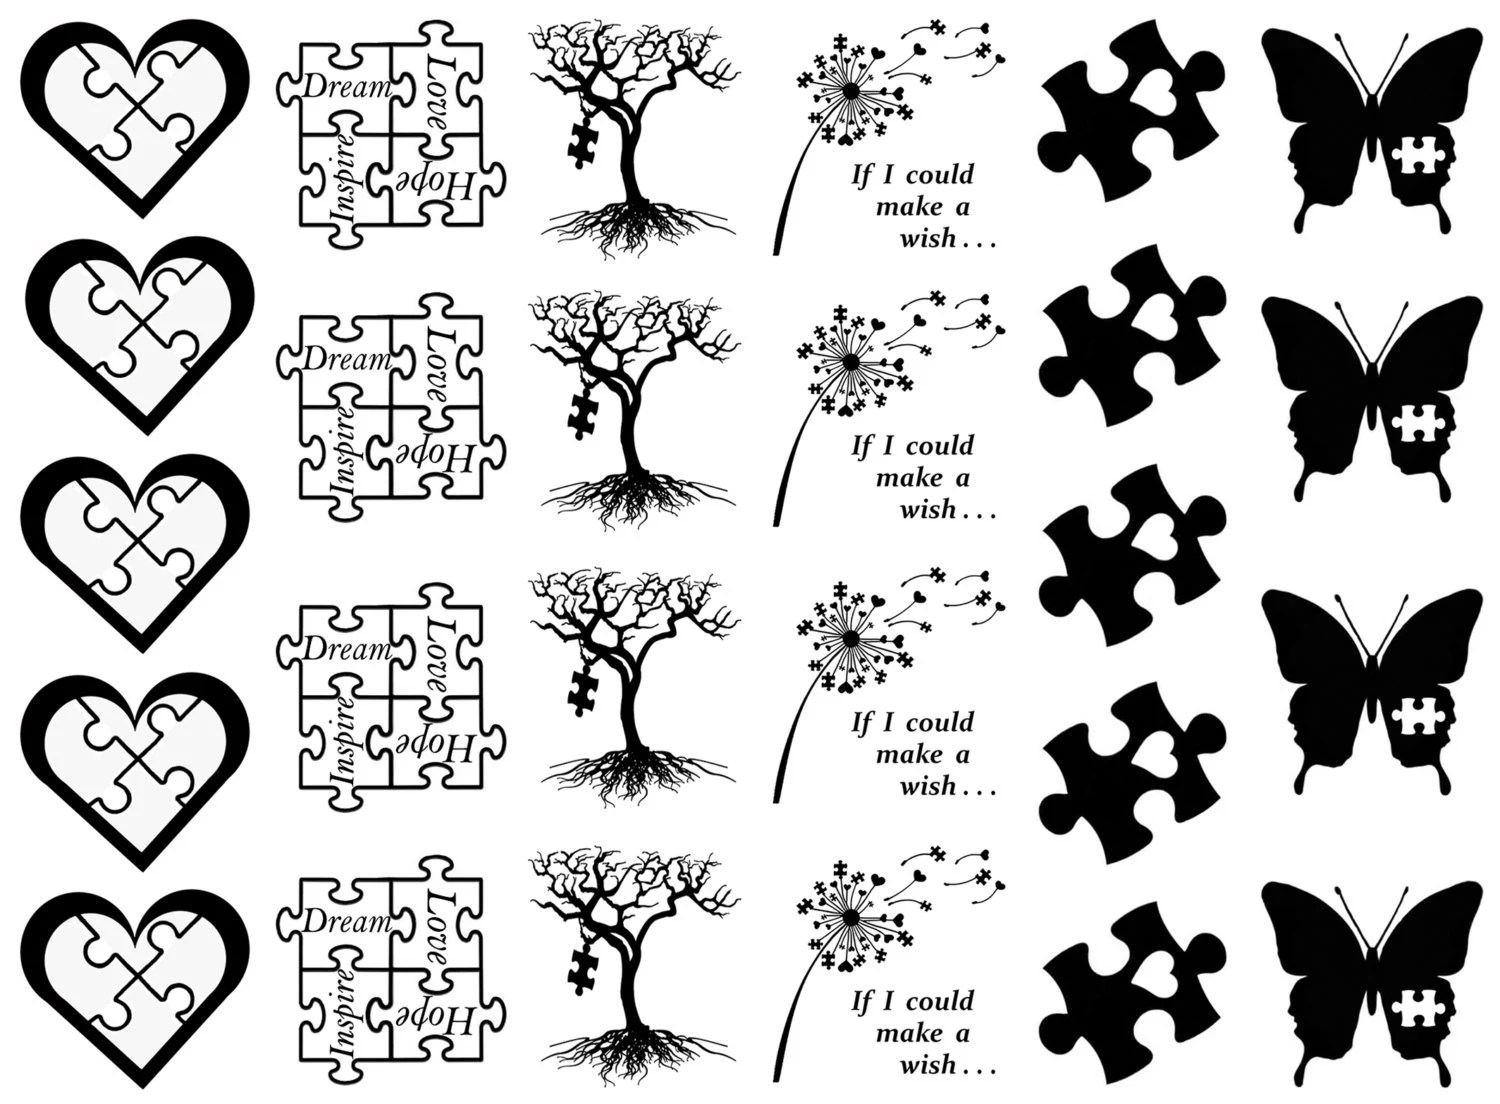 Autism Awareness Heart Puzzle Piece Black Or White Silk